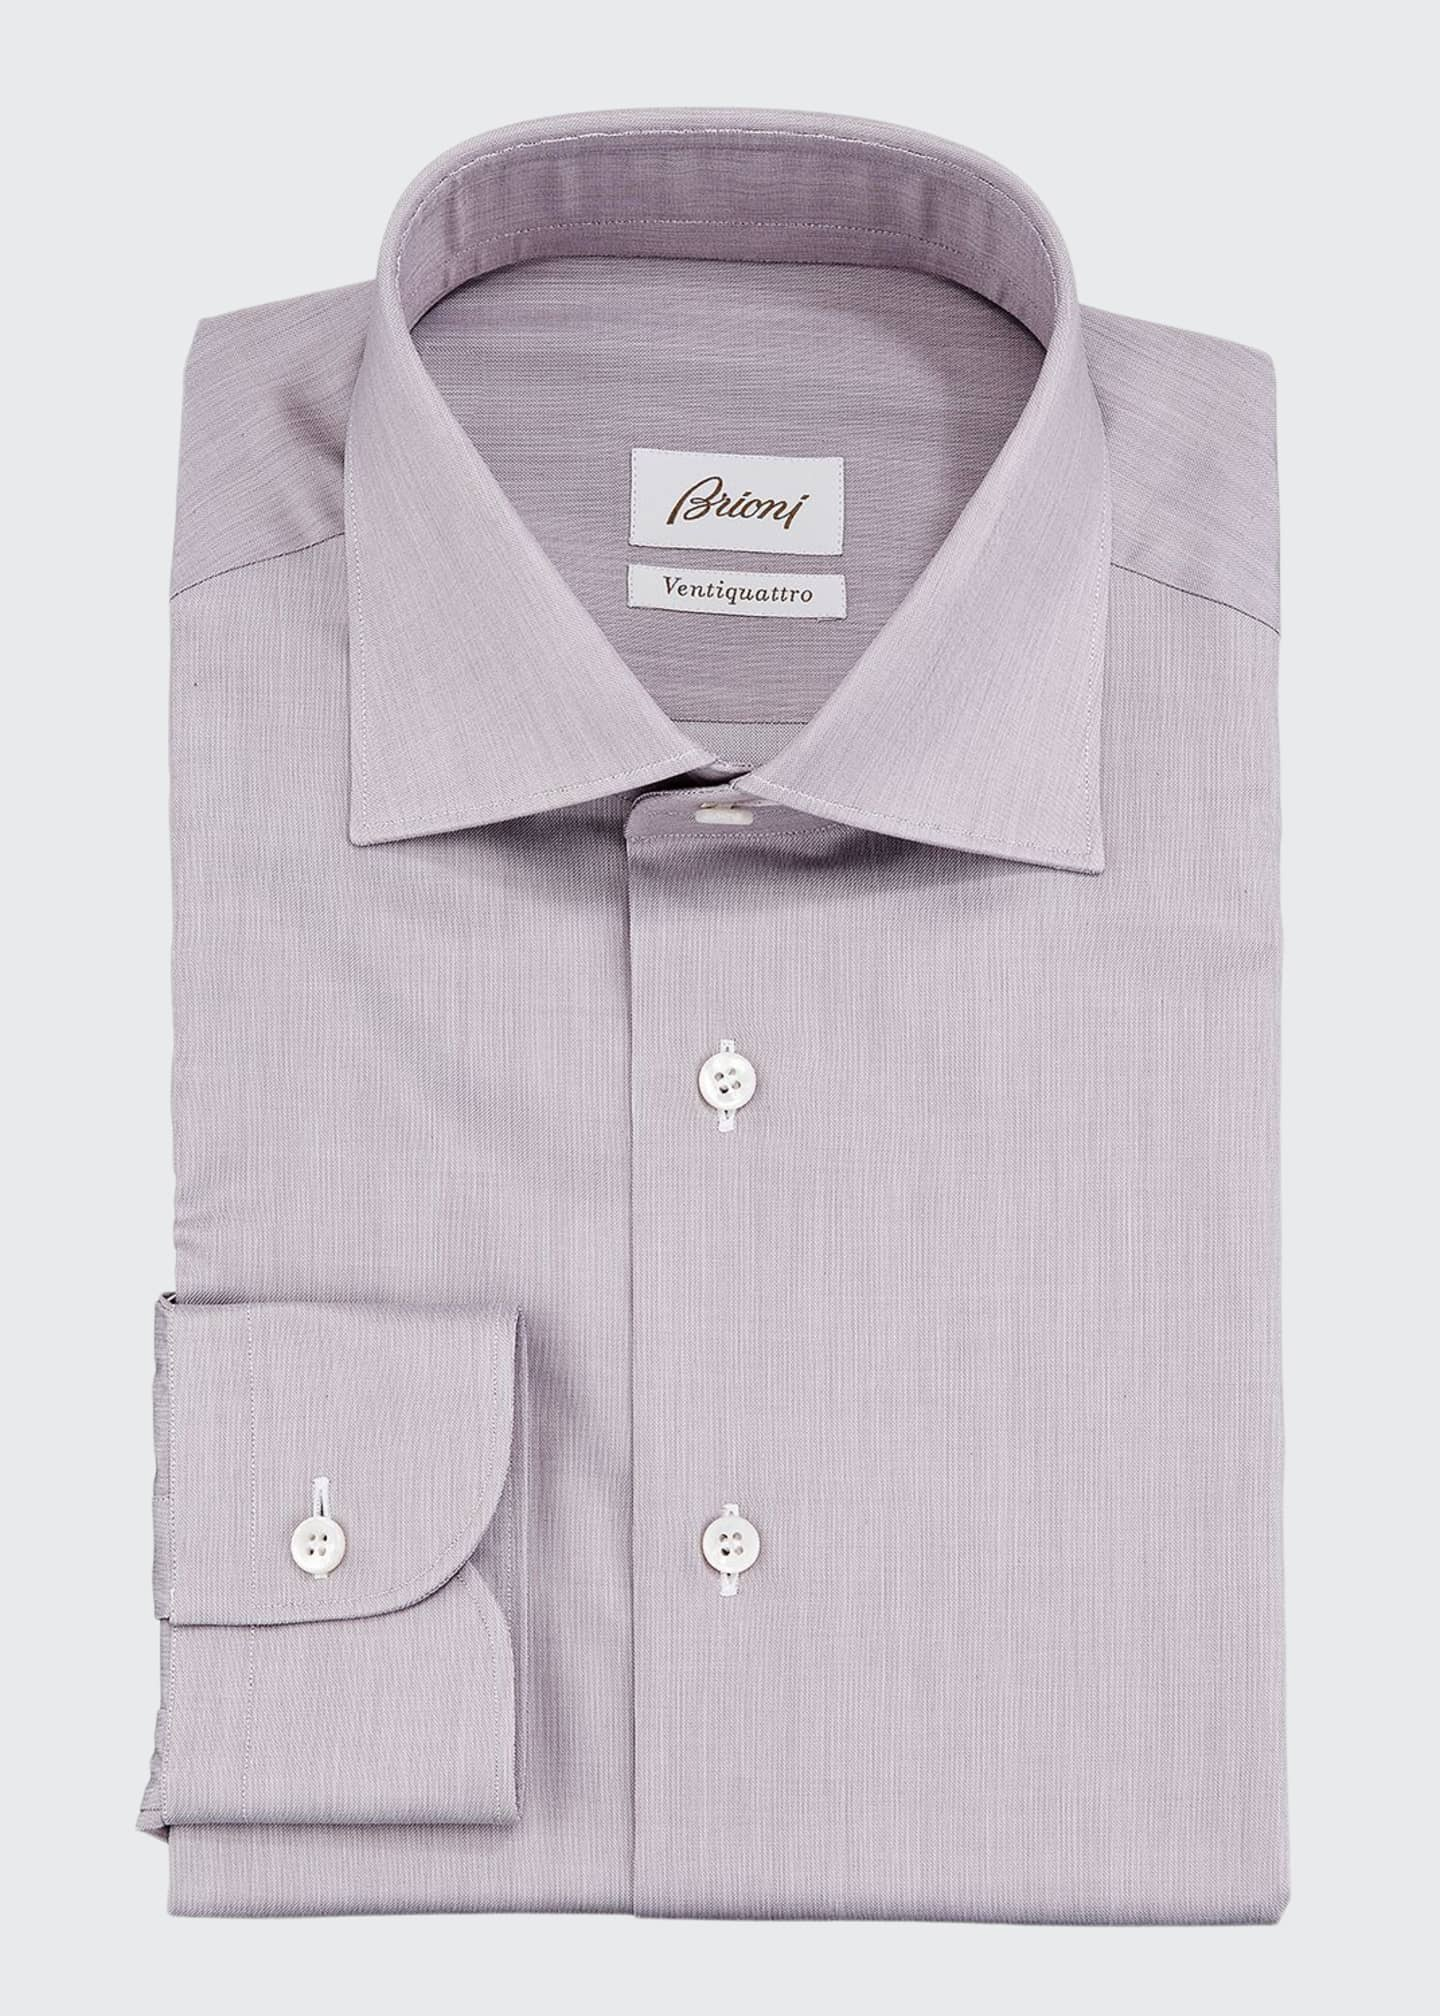 Brioni Ventiquattro Cotton Chambray Dress Shirt